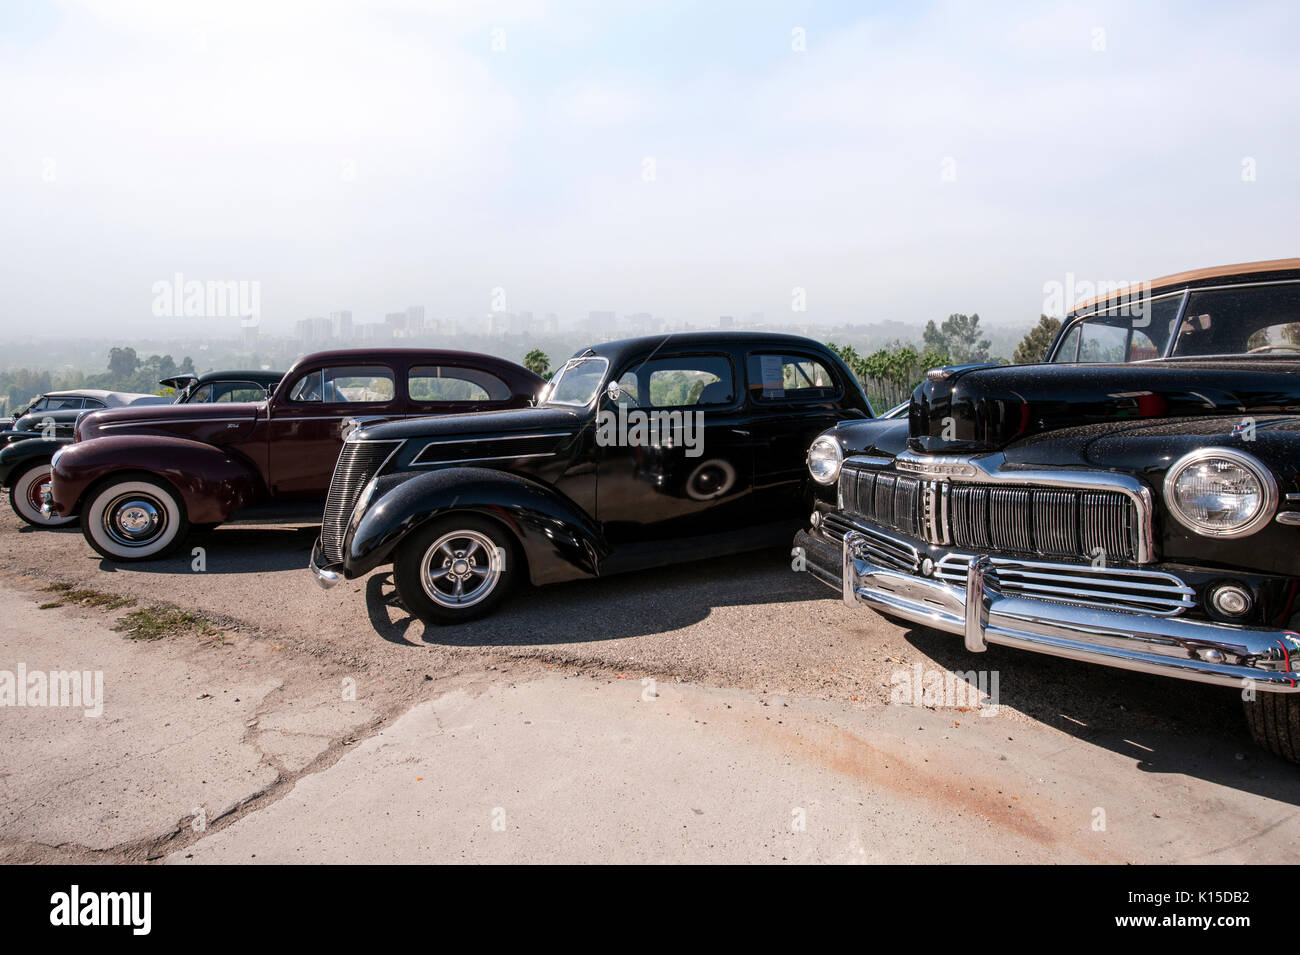 Vintage Automobiles parked in Beullton California - Stock Image